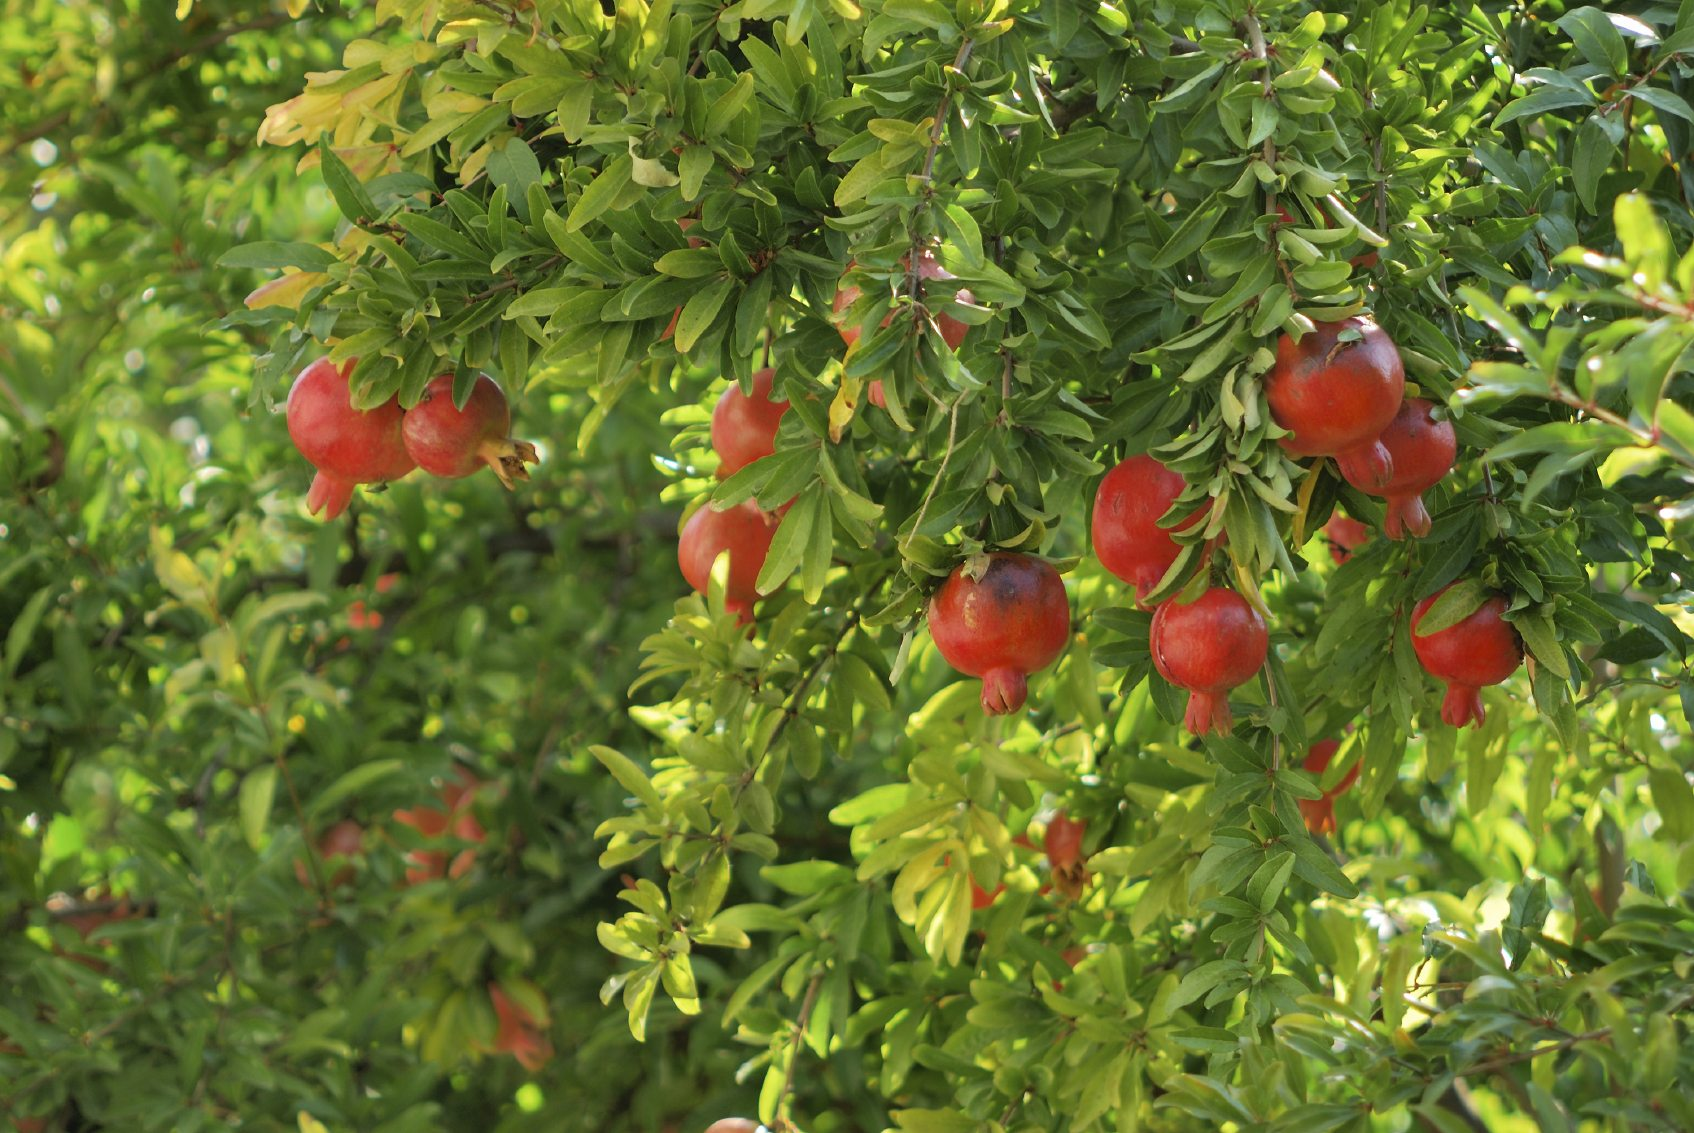 Pomegranate Fertilizing Needs When And What To Feed Pomegranate Trees